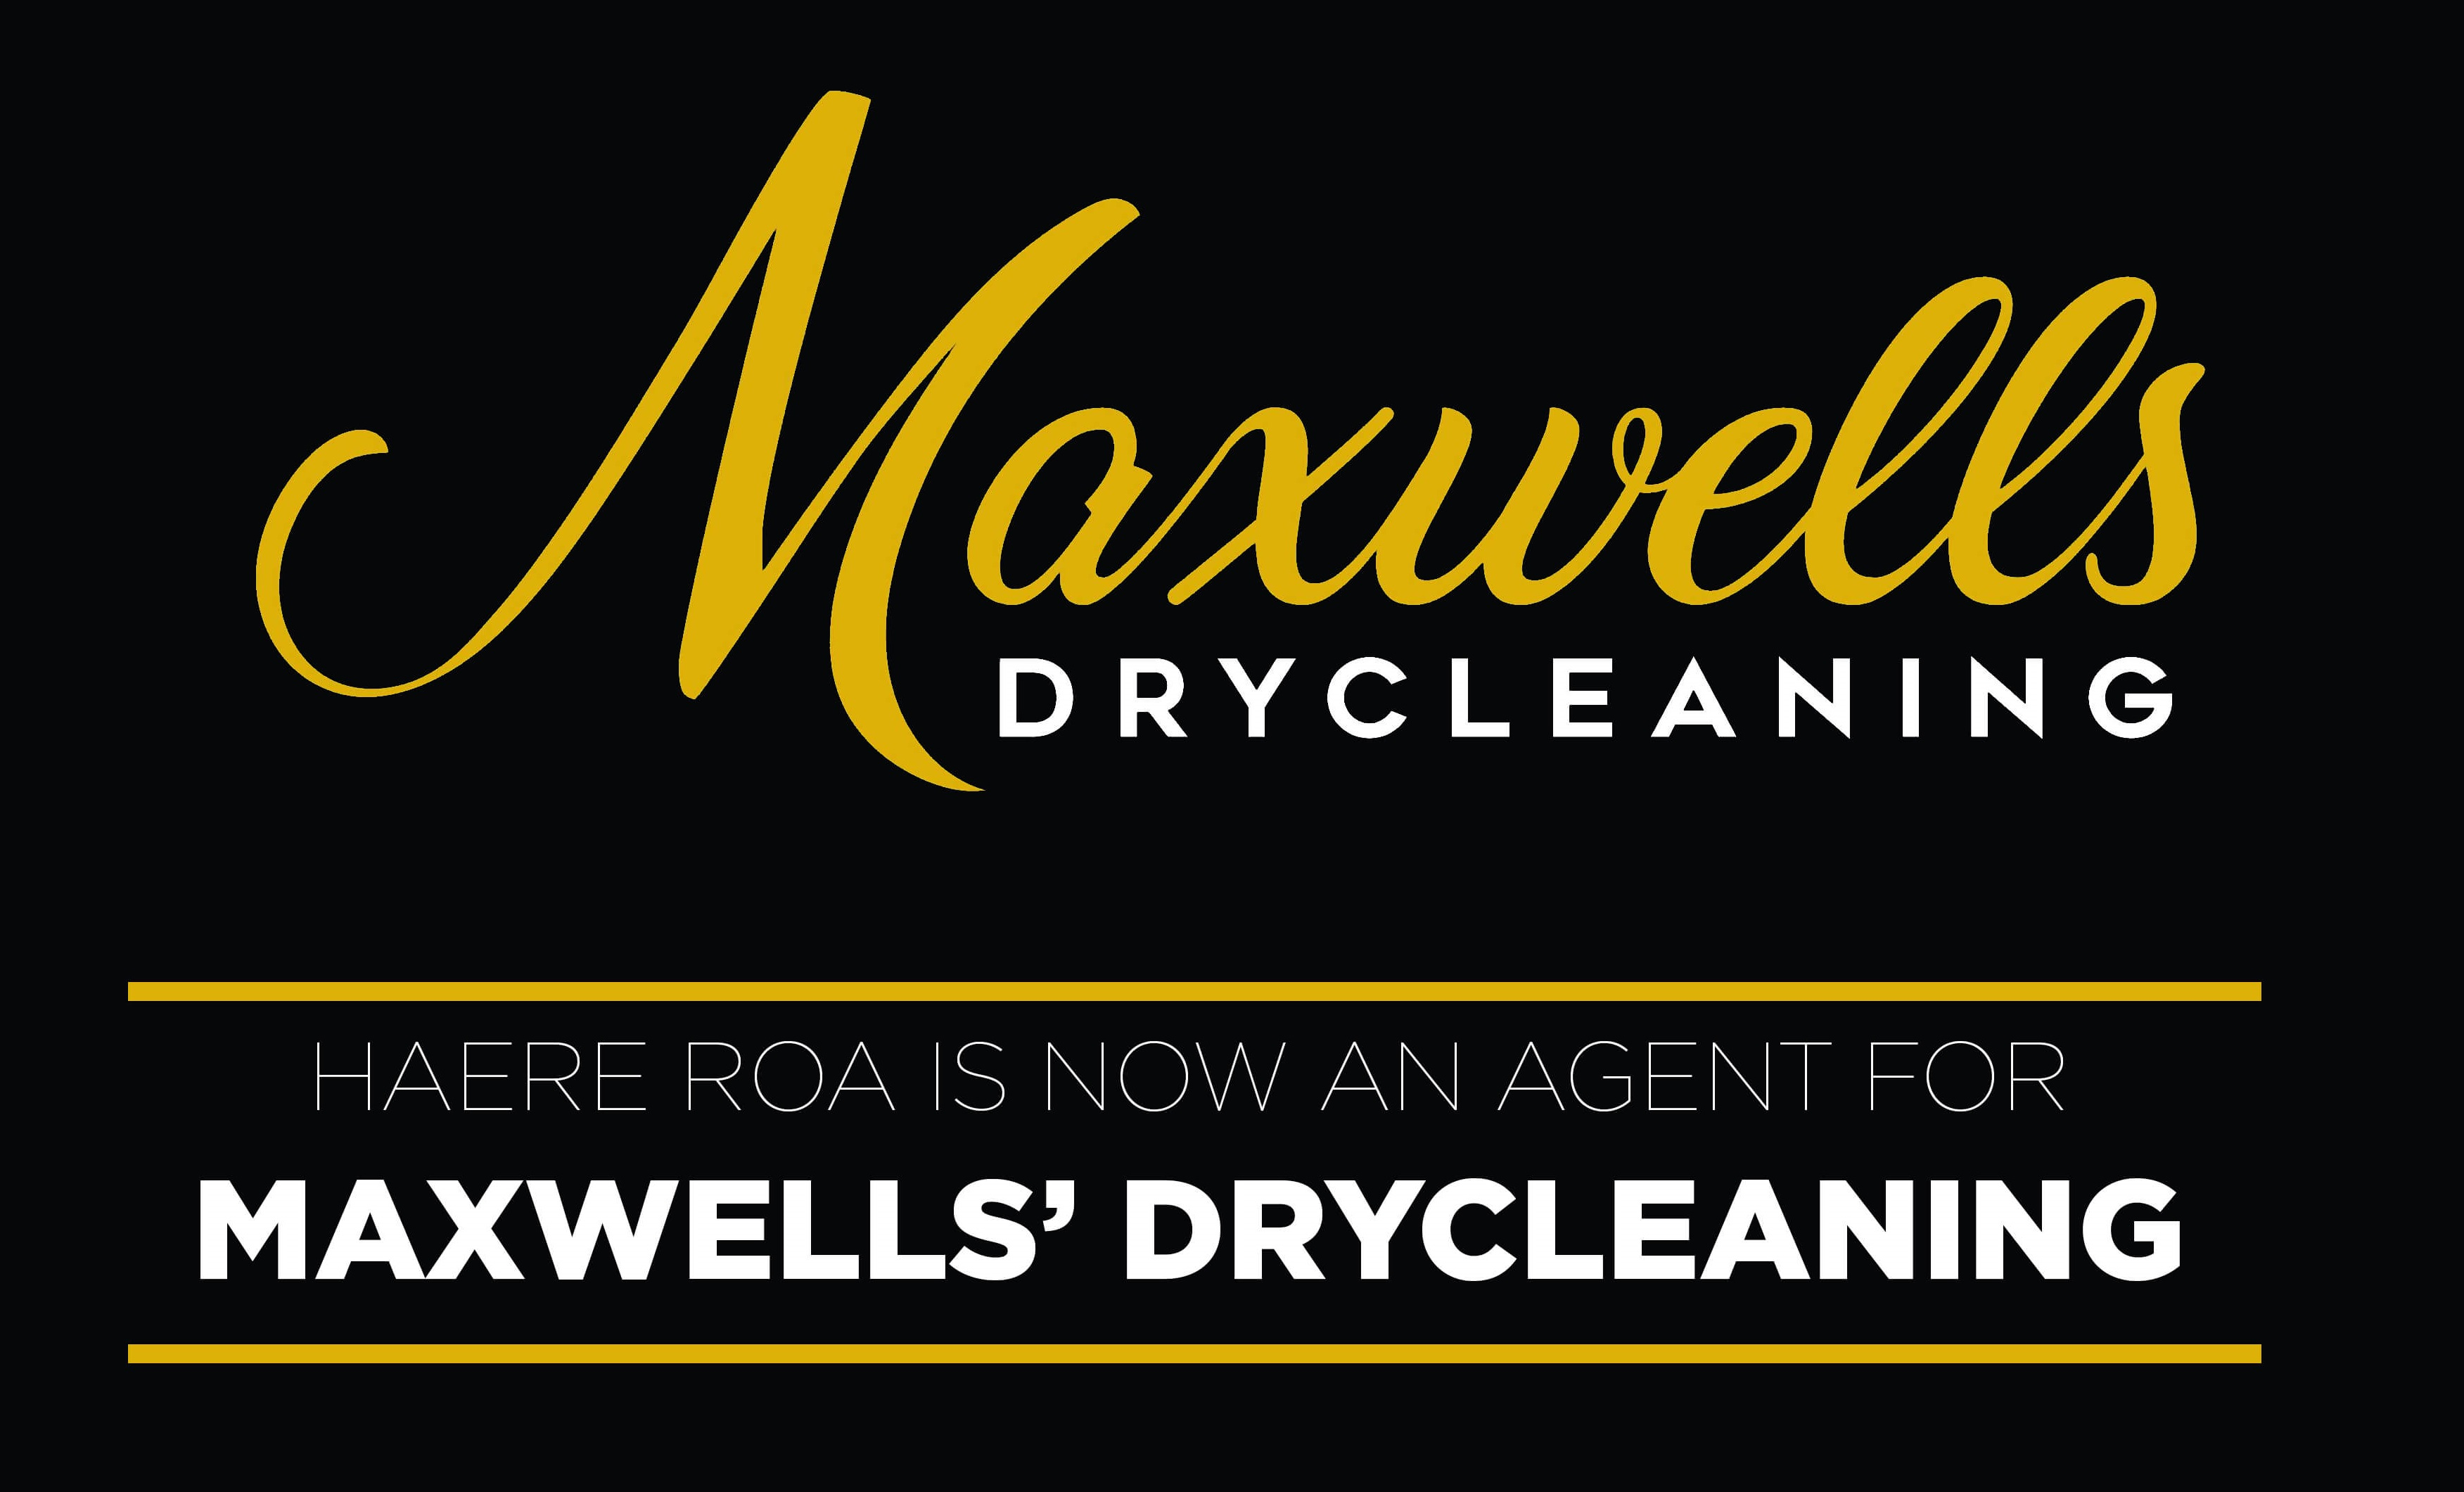 Maxwell's Drycleaning